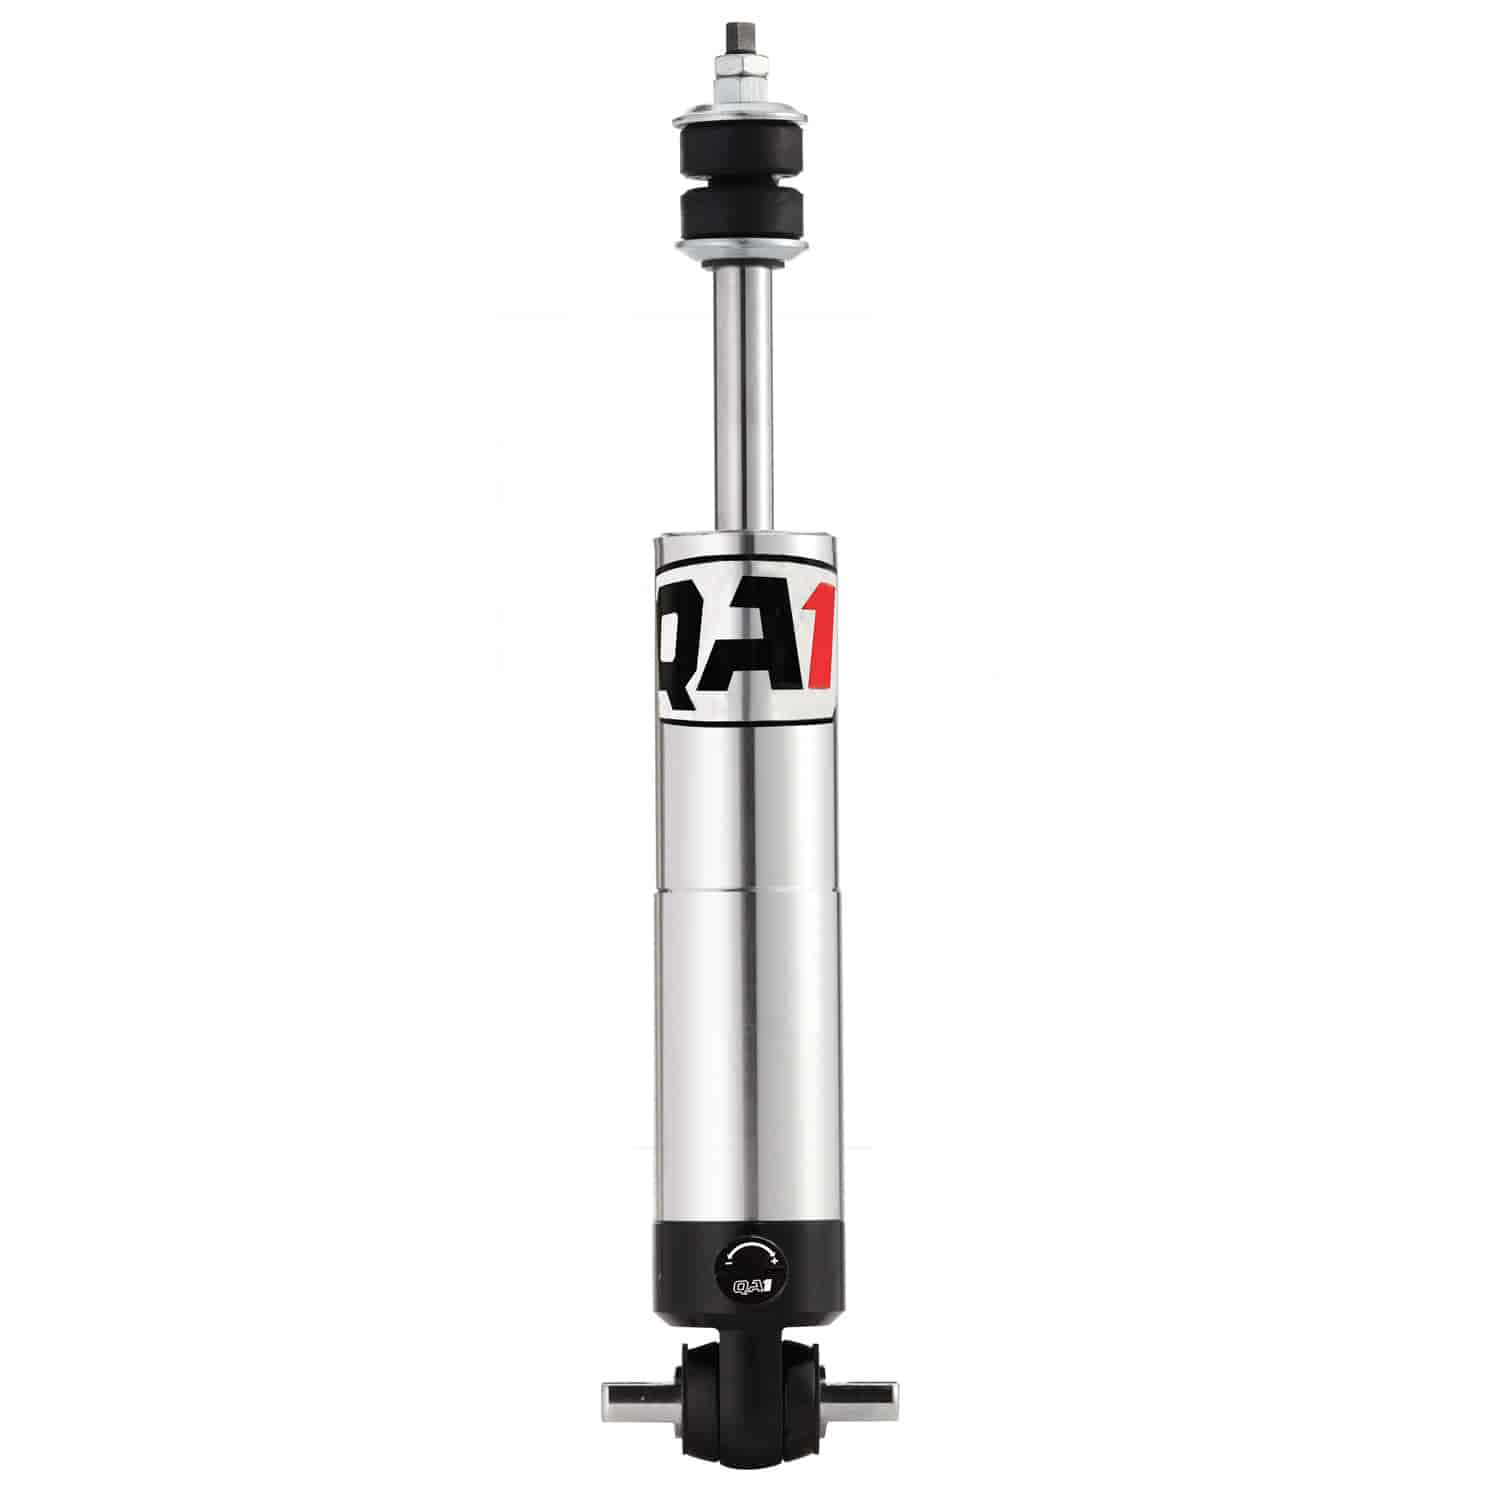 QA1 TS507 - QA1 Stocker Star Adjustable Shocks